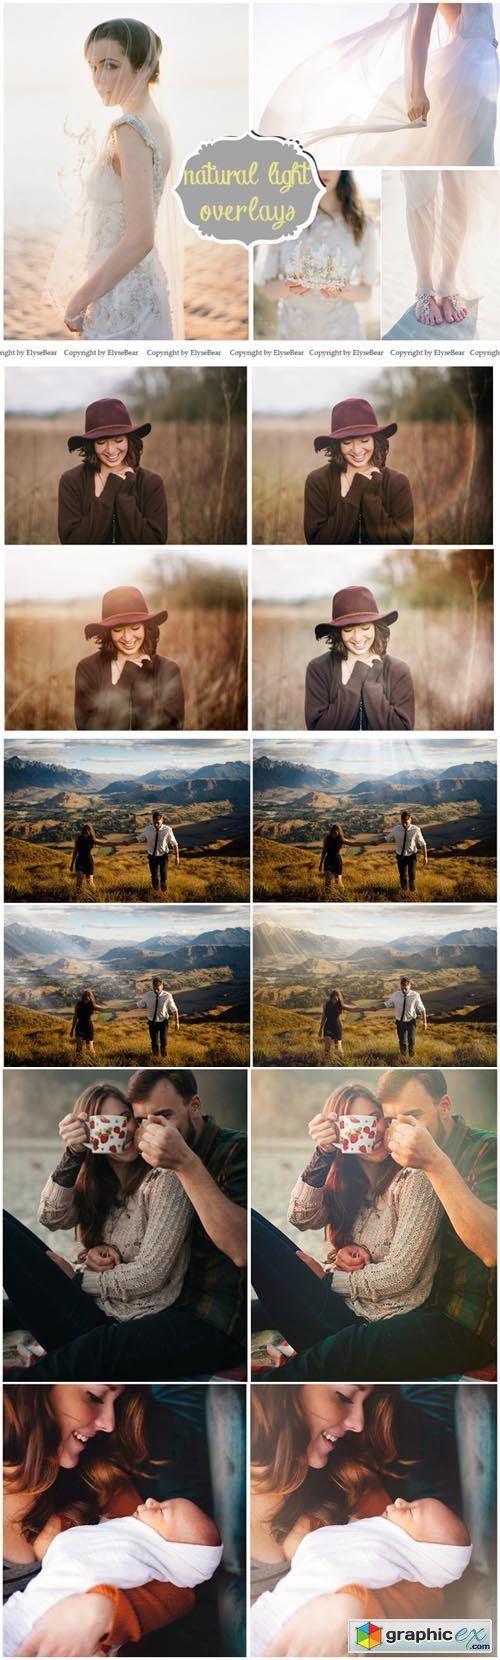 30 Natural Light Photo Overlays JPG